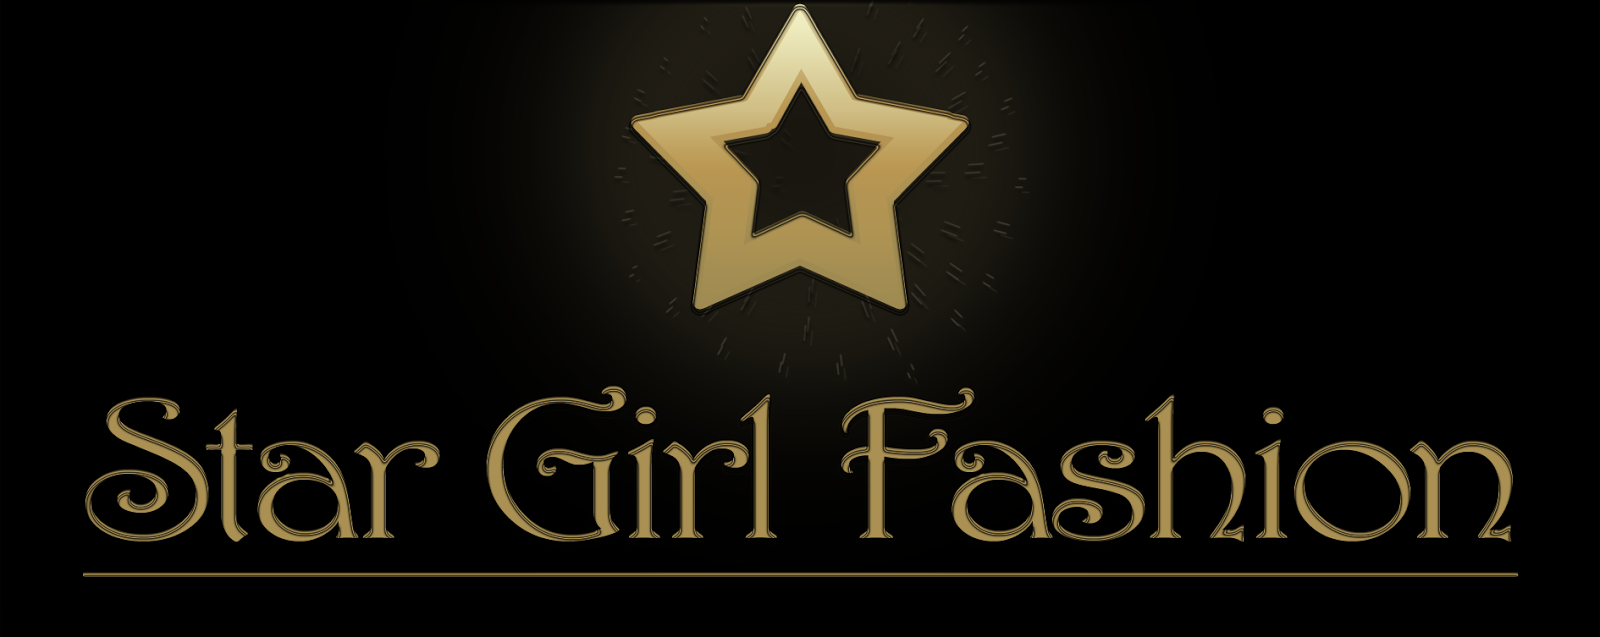 Star Girl Fashion